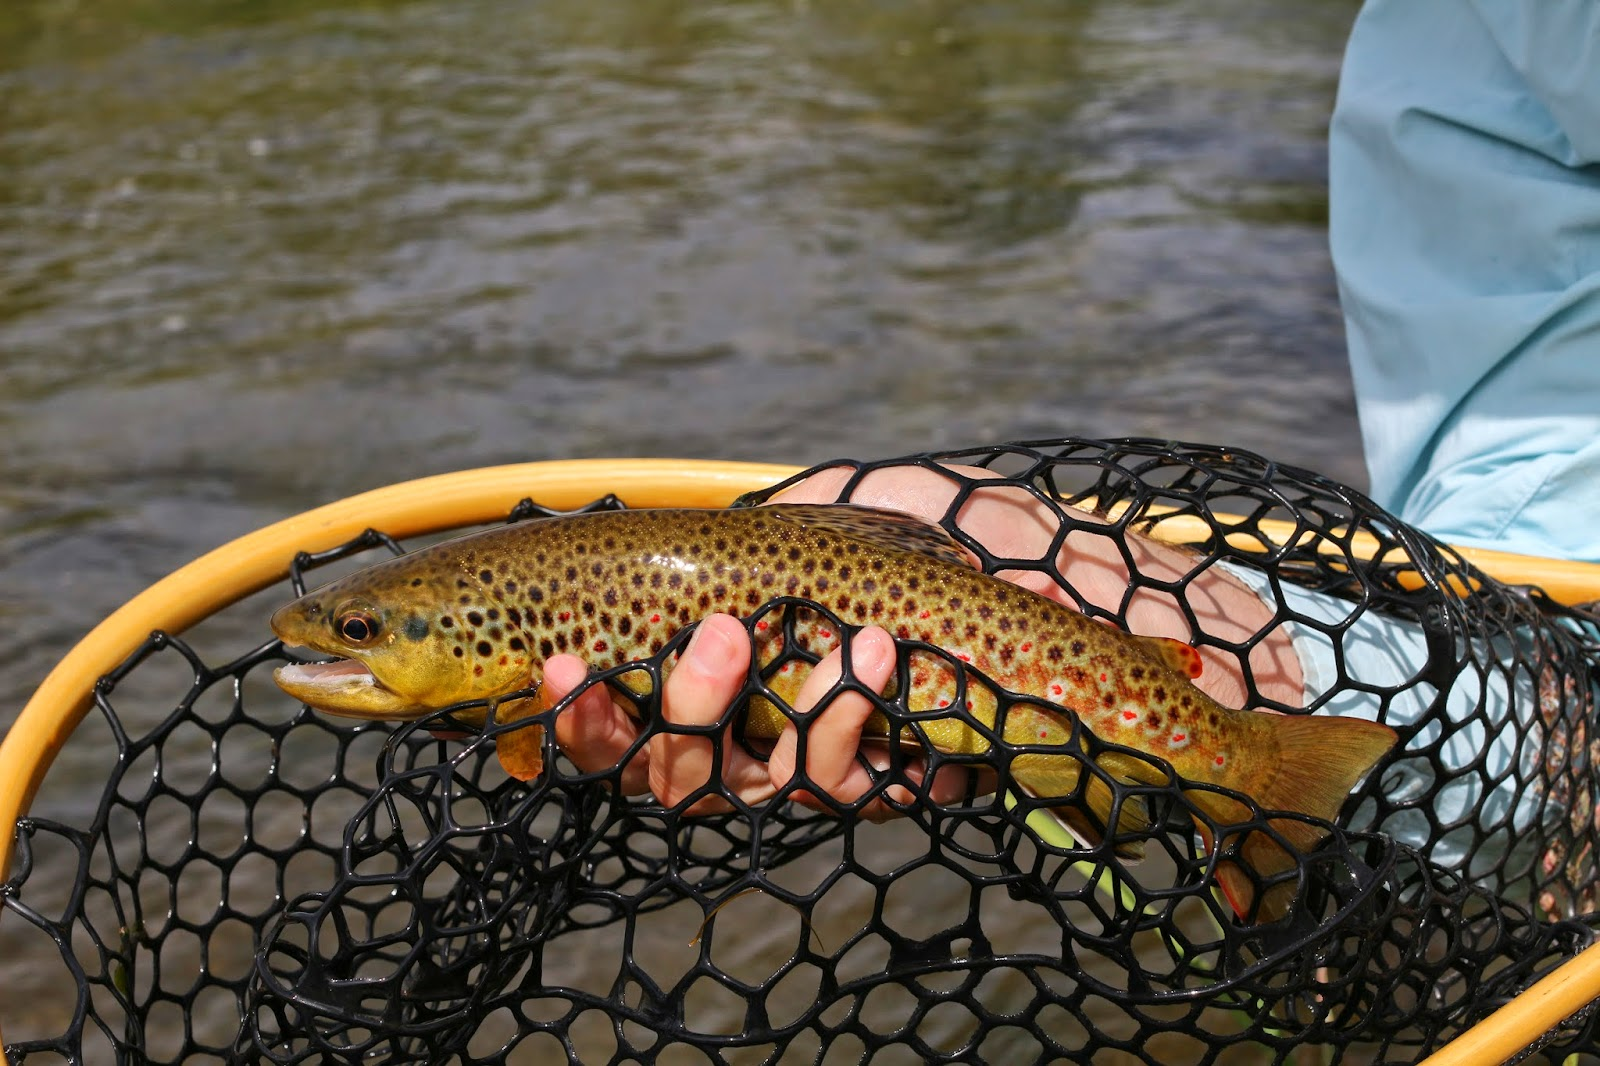 Fly+fish+the+Roaring+Fork+River+in+Colorado+with+Jay+Scott+Outdoors+8.JPG